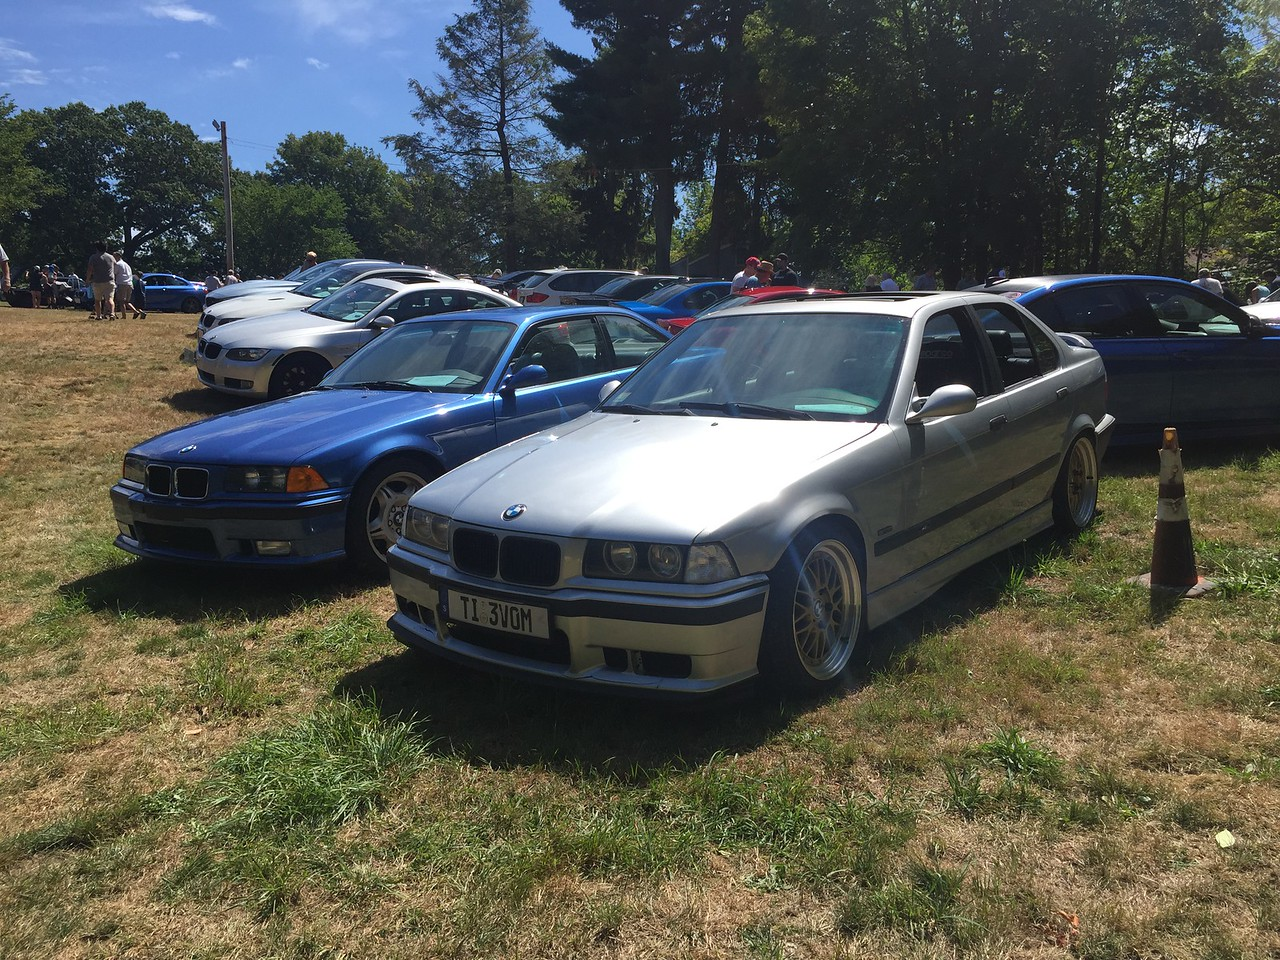 E36 M3s (can you please finish your front spoiler?)